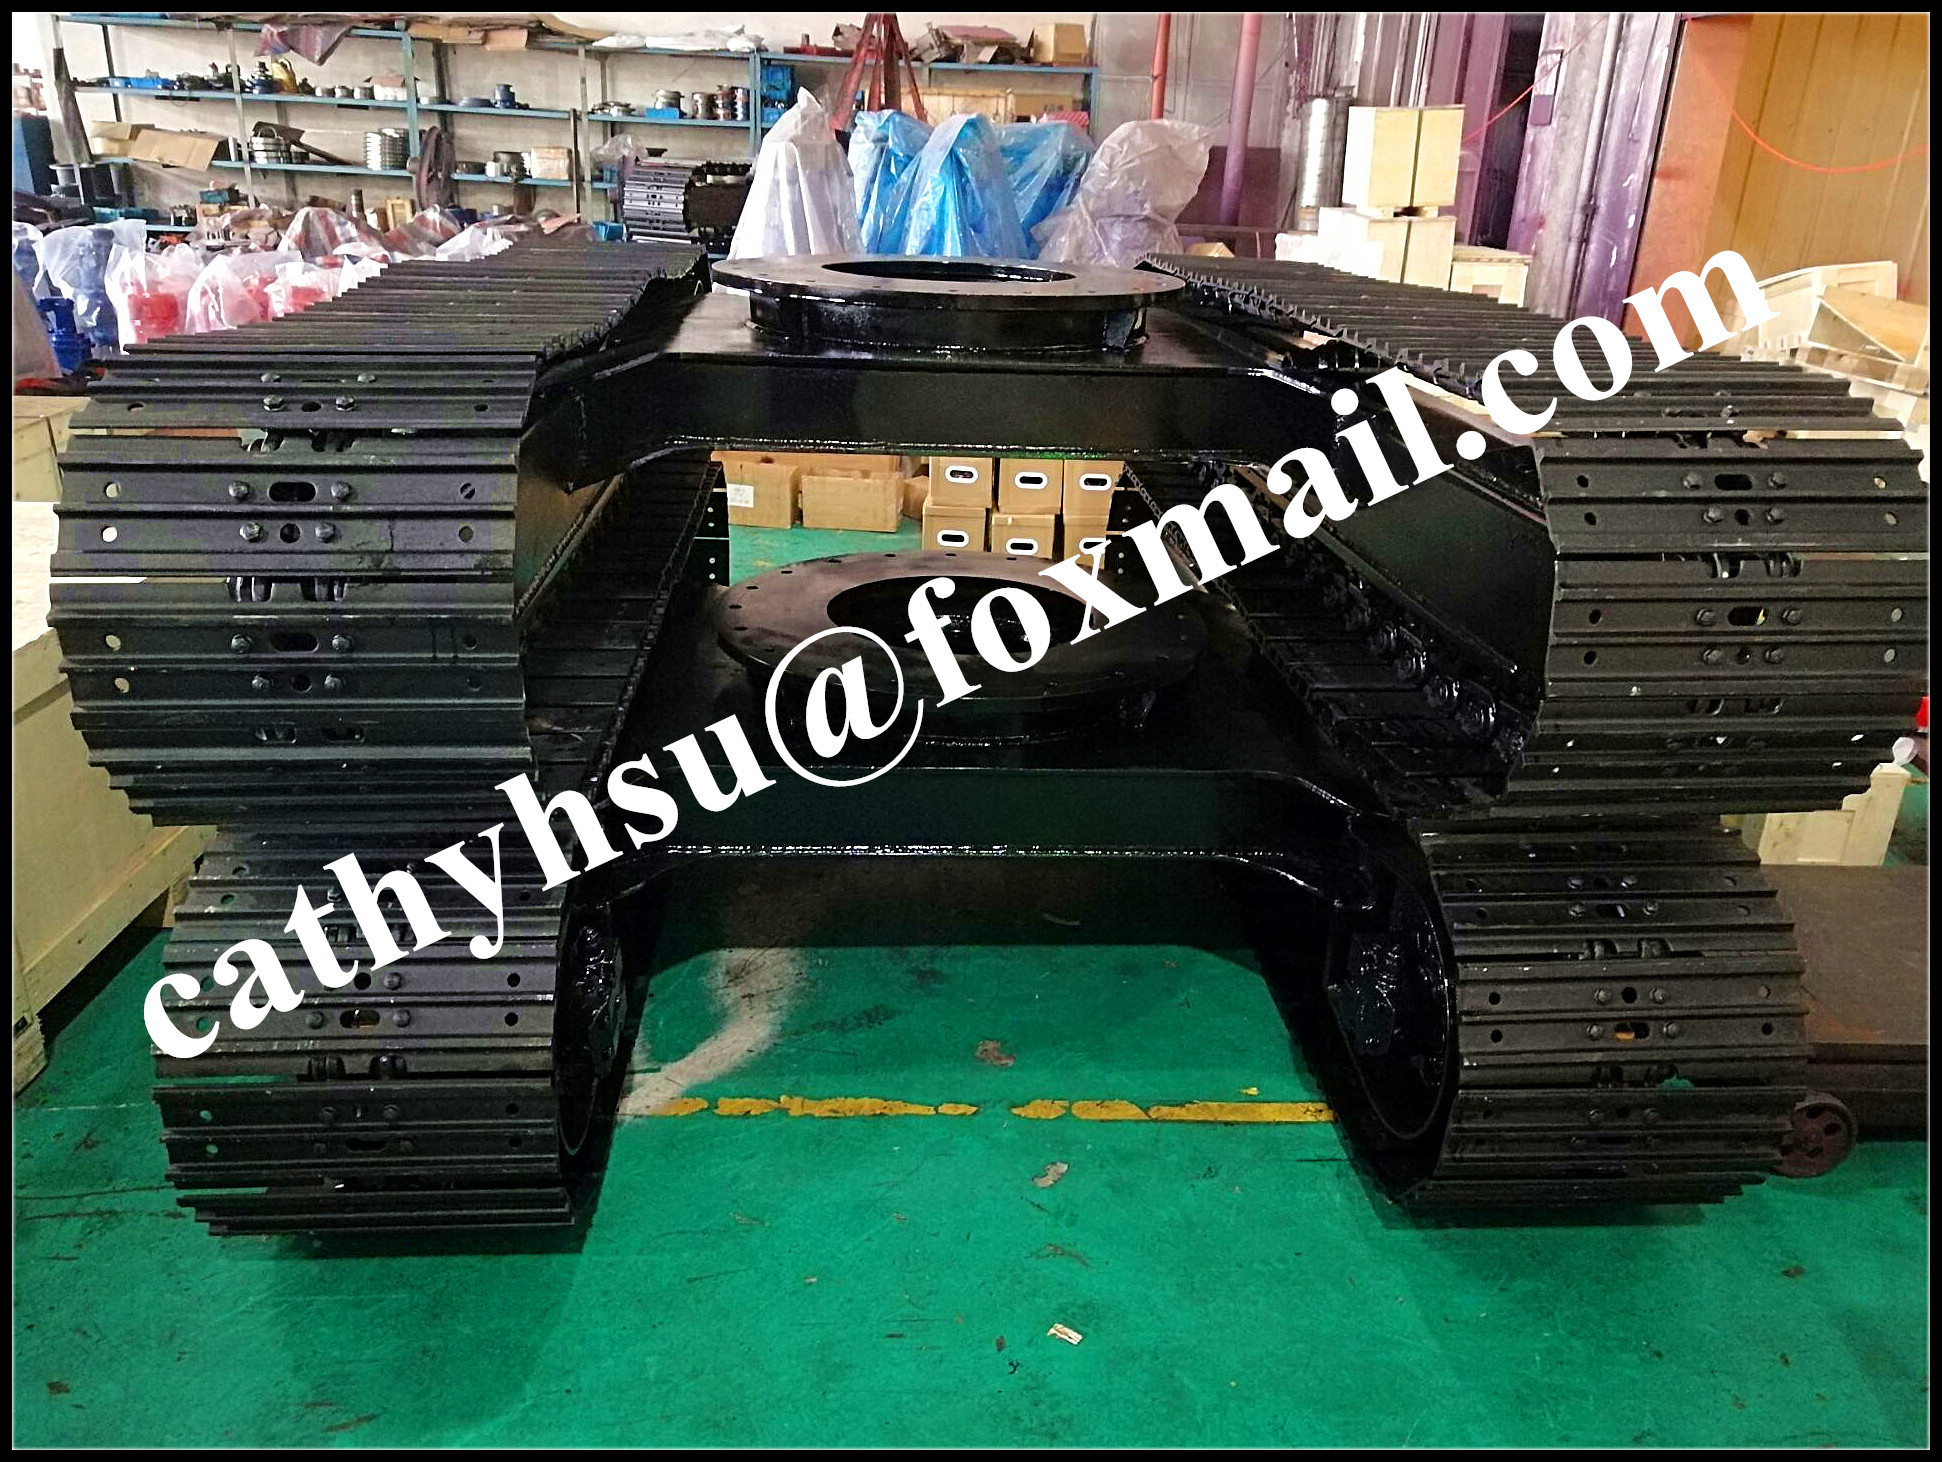 Steel track undercarriage, Steel track frame, steel track chassis, steel track system, steel crawlerundercarriage, steel tracked undercarriage, drilling rig steel track undercarriage, crusher steel trackundercarriage, excavator track undercarriage